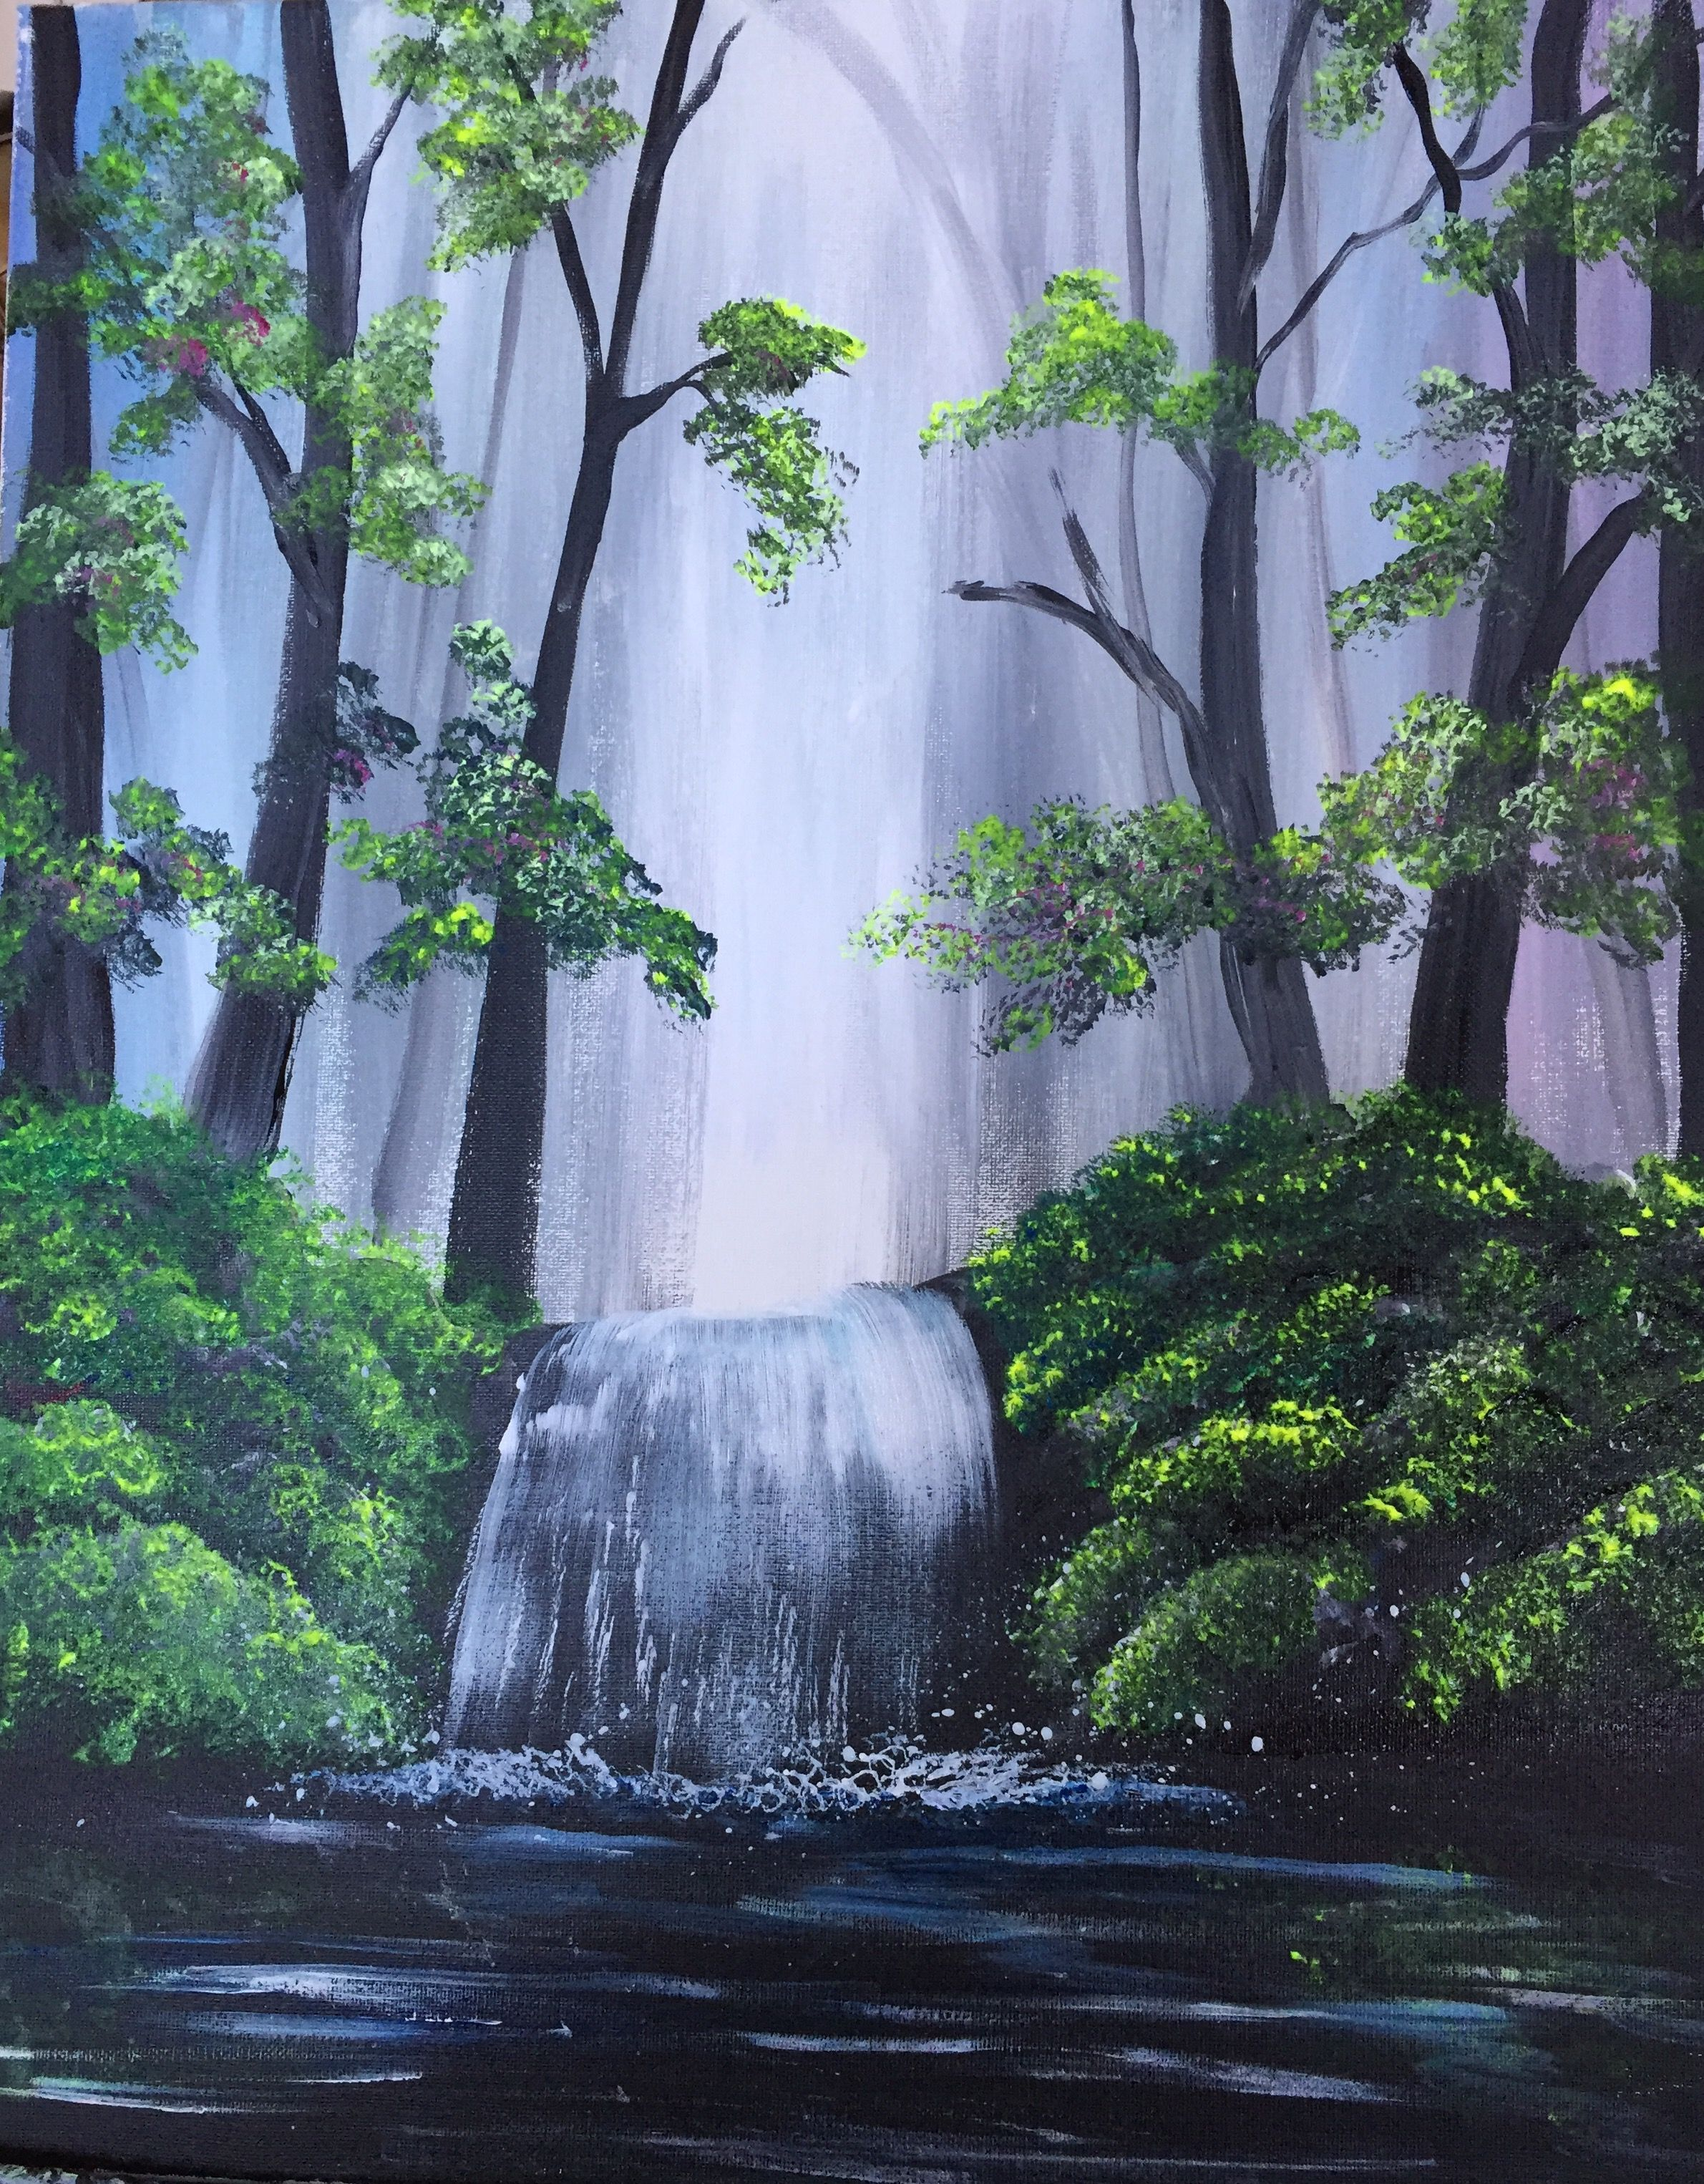 Paint Nite Drink Paint Party We Host Painting Events At Local Bars Come Join Us For A Paint Nite Party Waterfall Paintings Night Painting Canvas Art